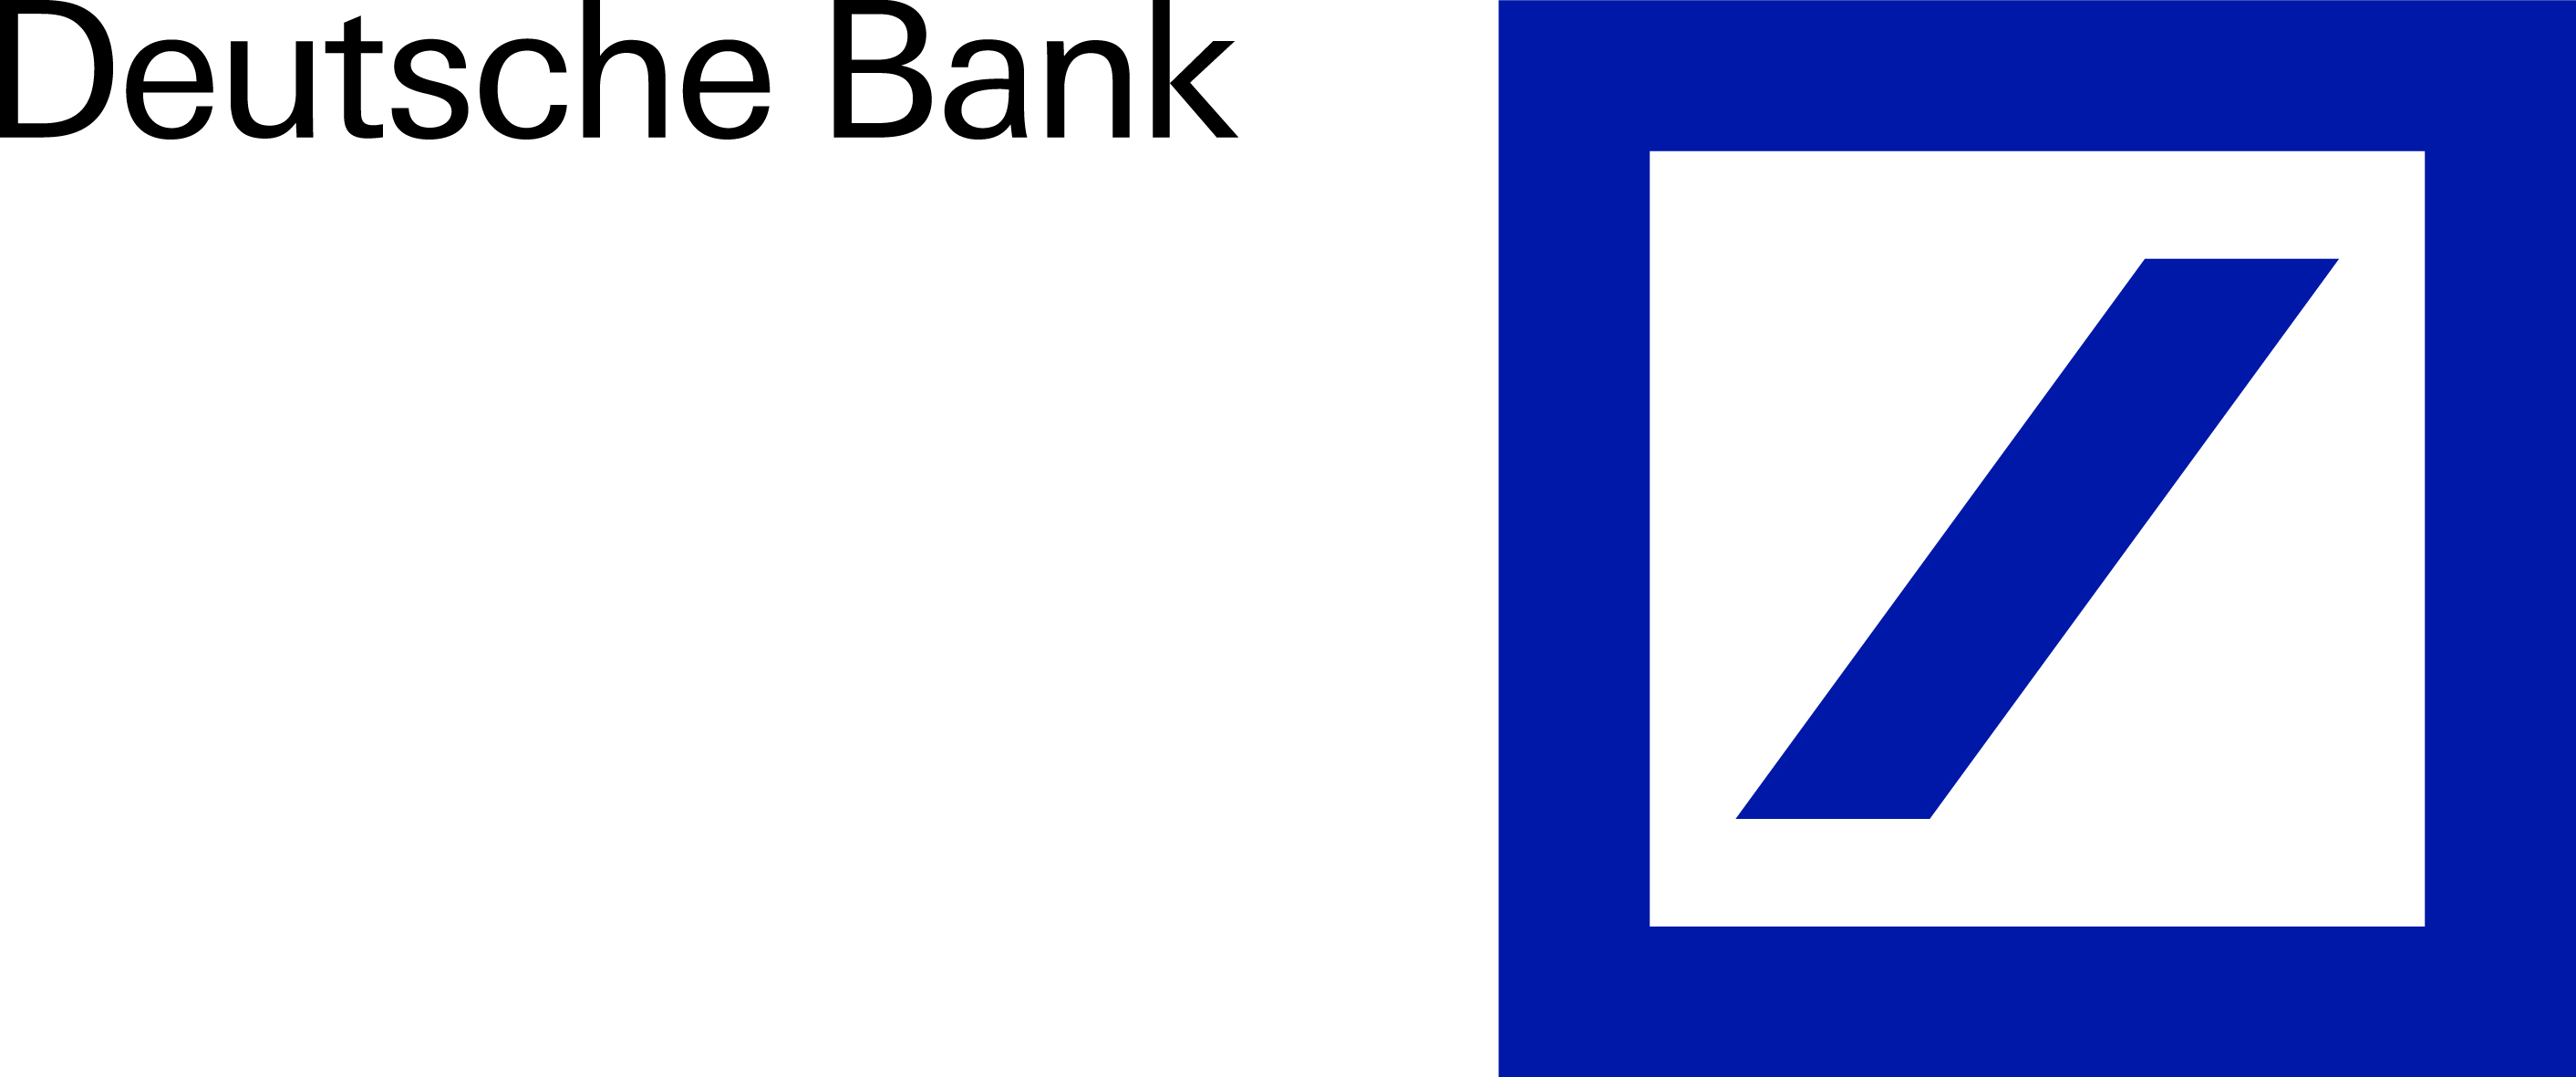 deutsche_bank logo Banks logo